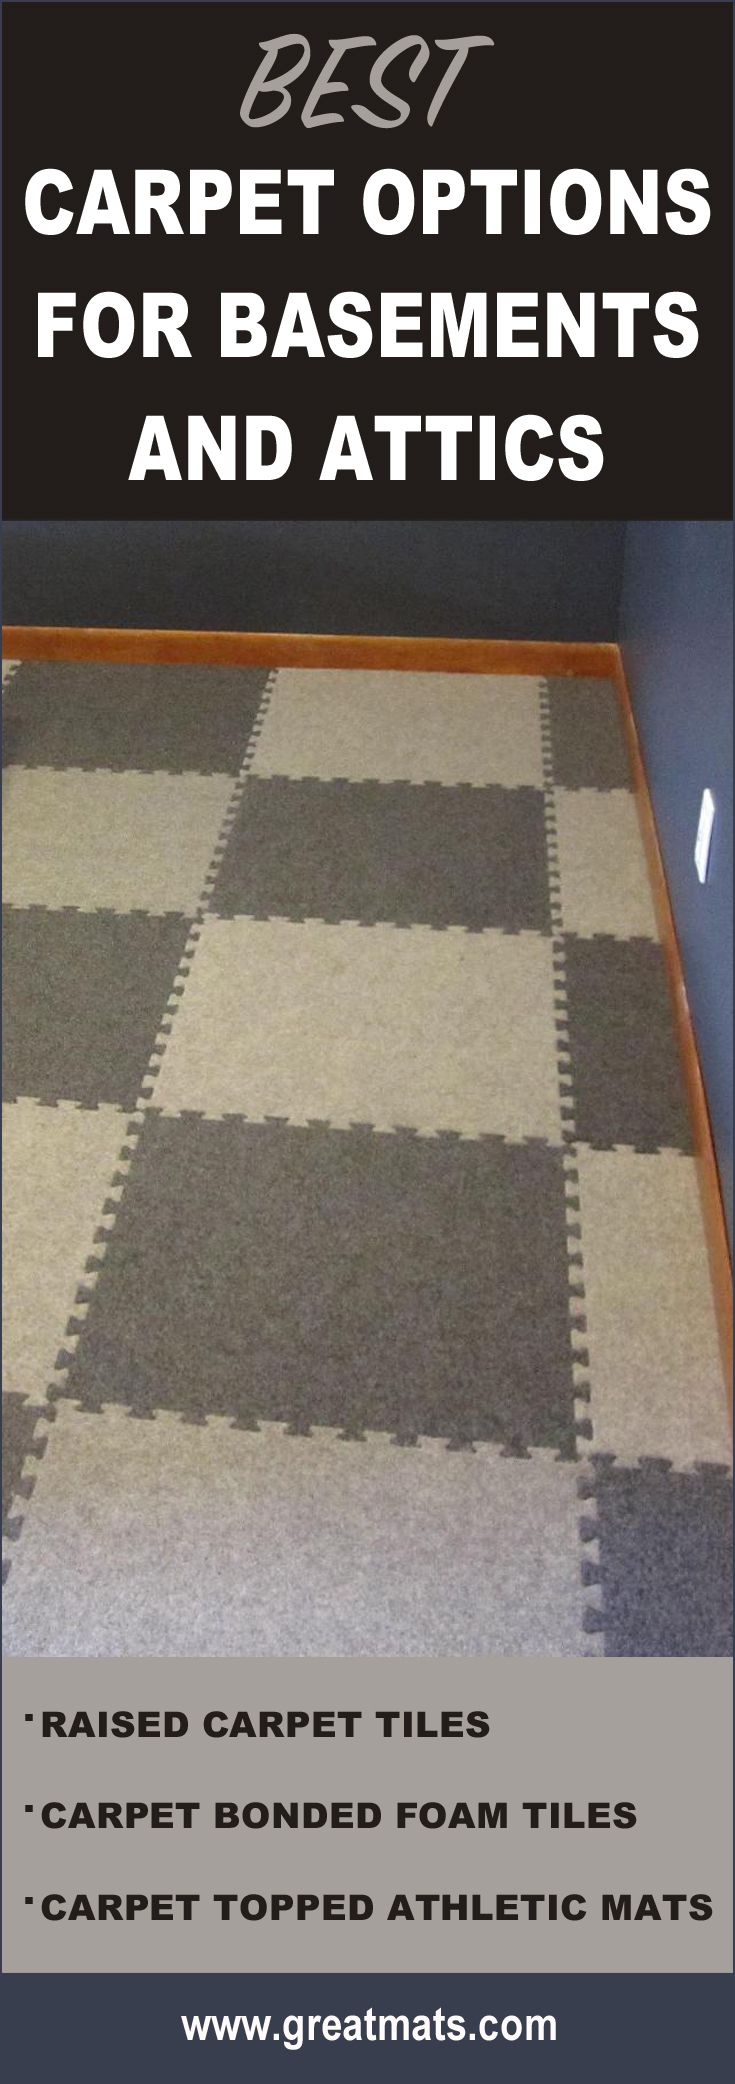 What is the best carpet to buy for the price - Attic And Basement Carpet Mat And Tile Options